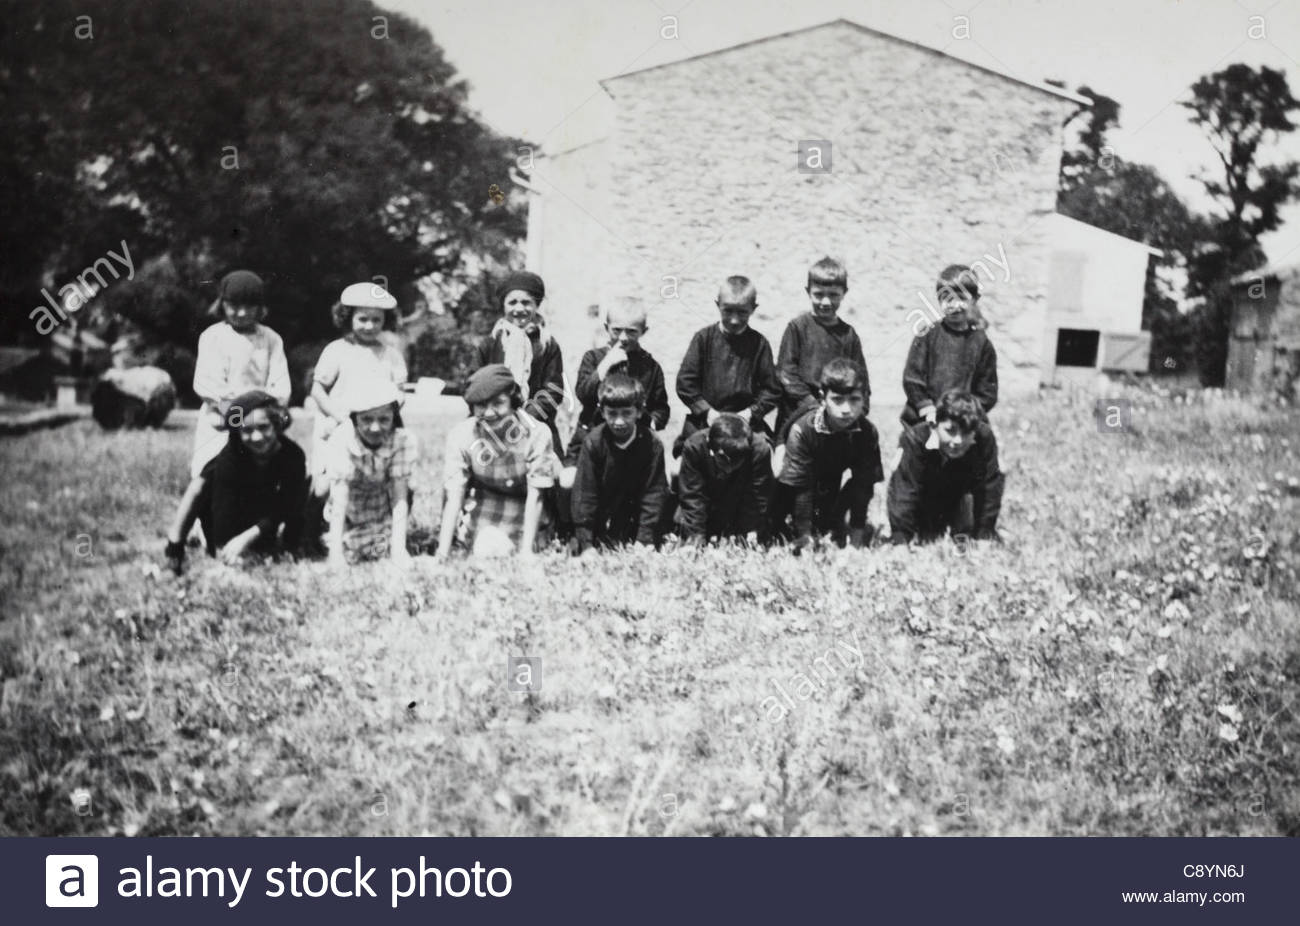 class rural France posing with teachers during a horseback play game France 1930s - Stock Image